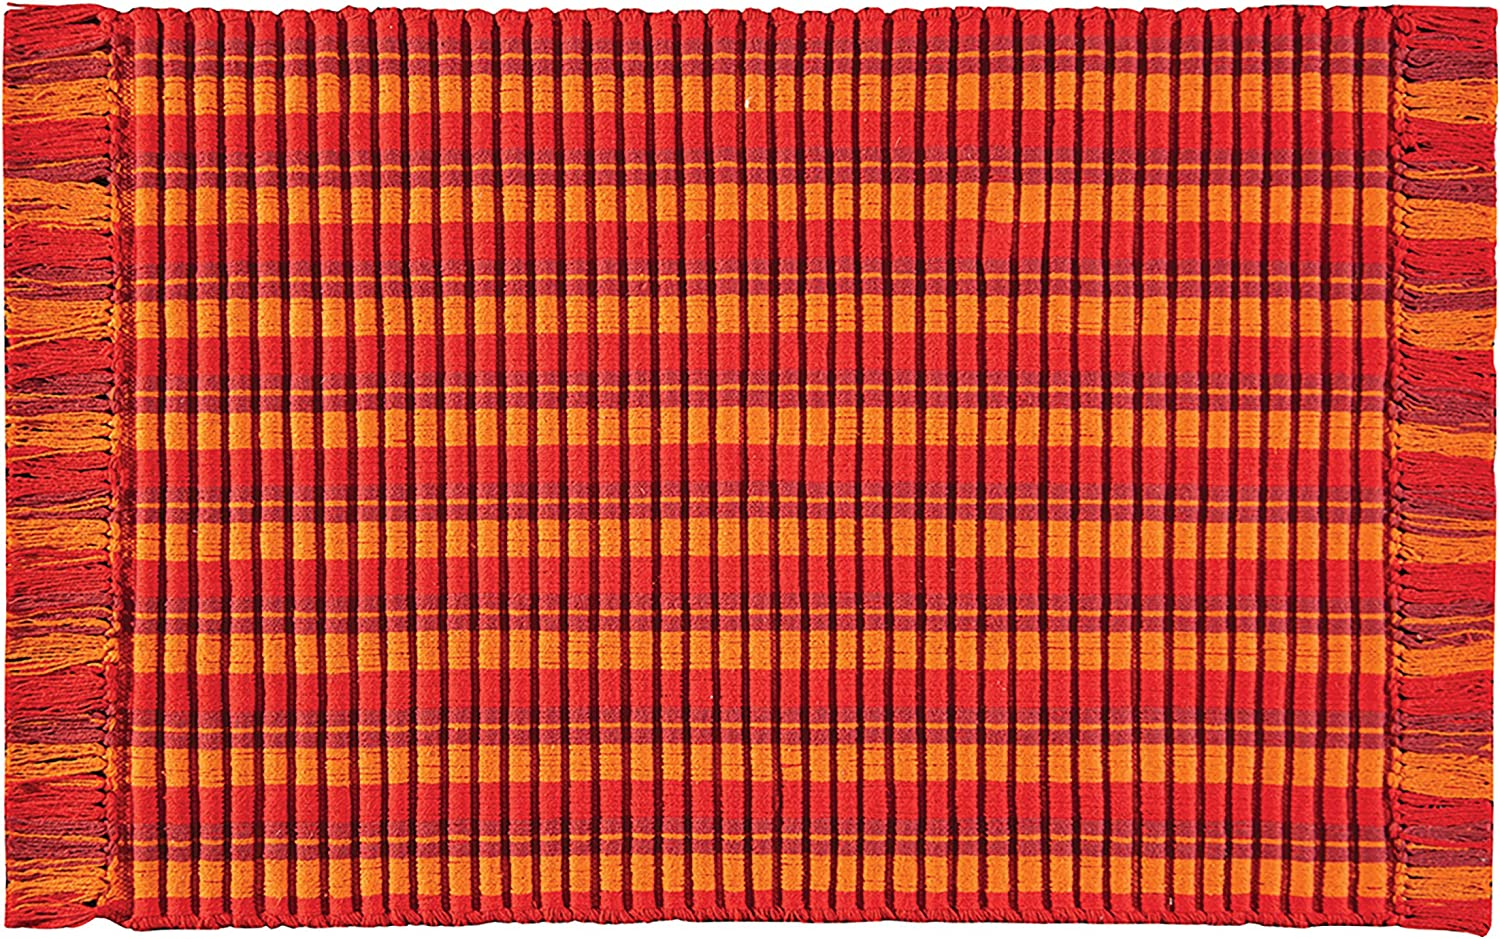 C&F Home Ribbed Fiesta Summer Cookout Spring Latin Party Red Orange Handcrafted Premium Decorative Woven Area Rug 2'x3' Red